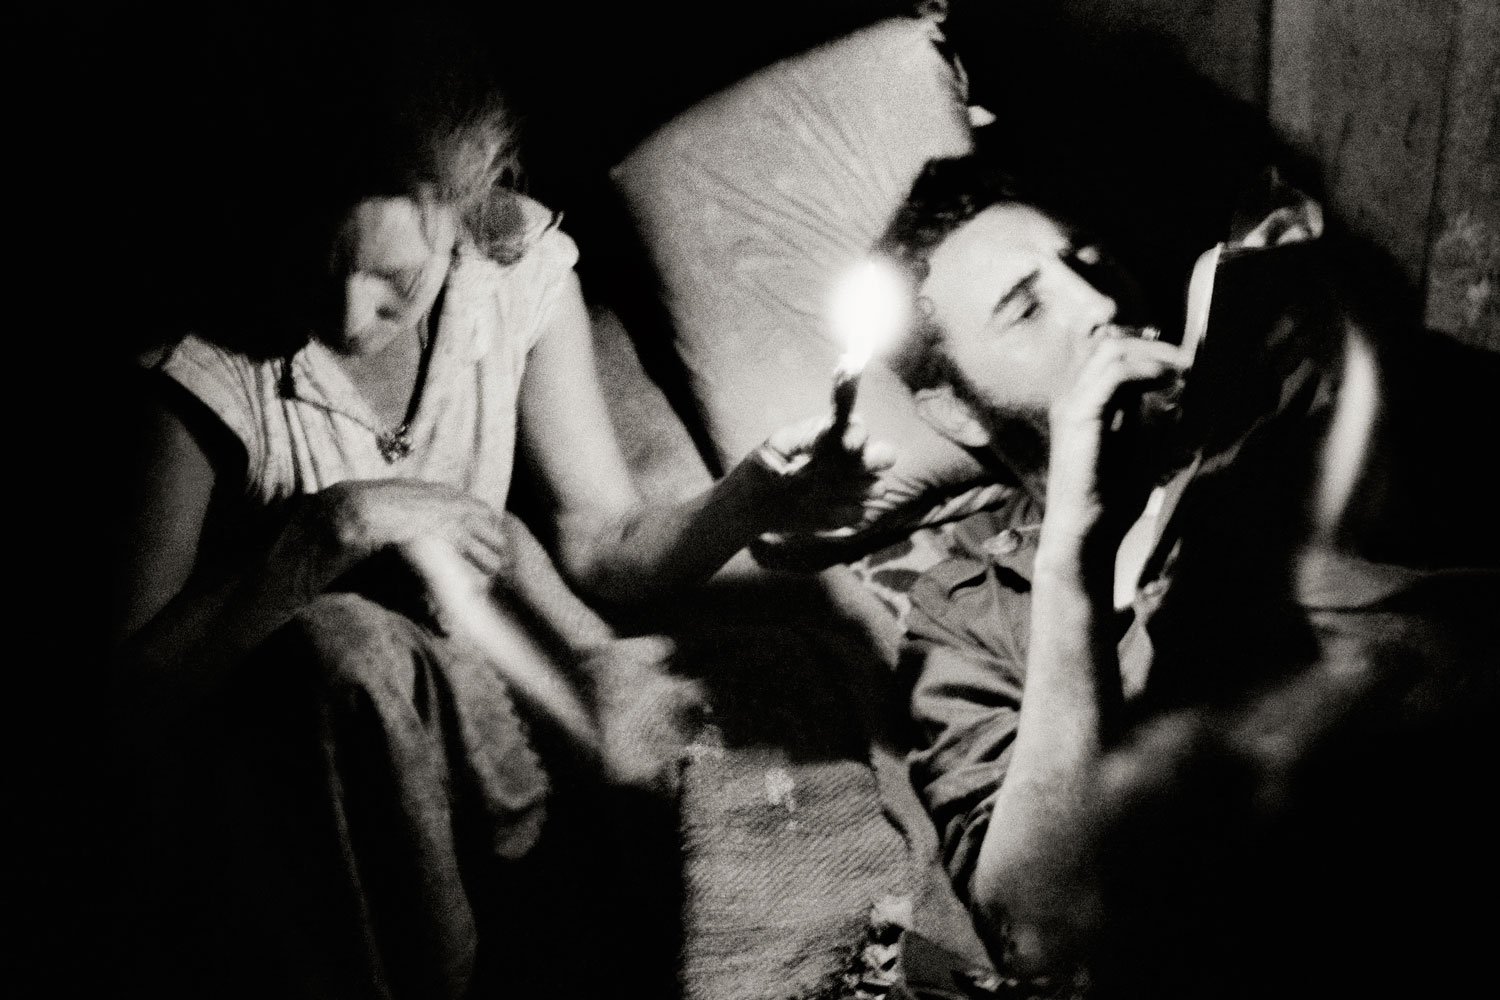 Fidel Castro reads at night during the Battle of Pino del Agua, in the Sierra Maestra mountains, Cuba, 1958.